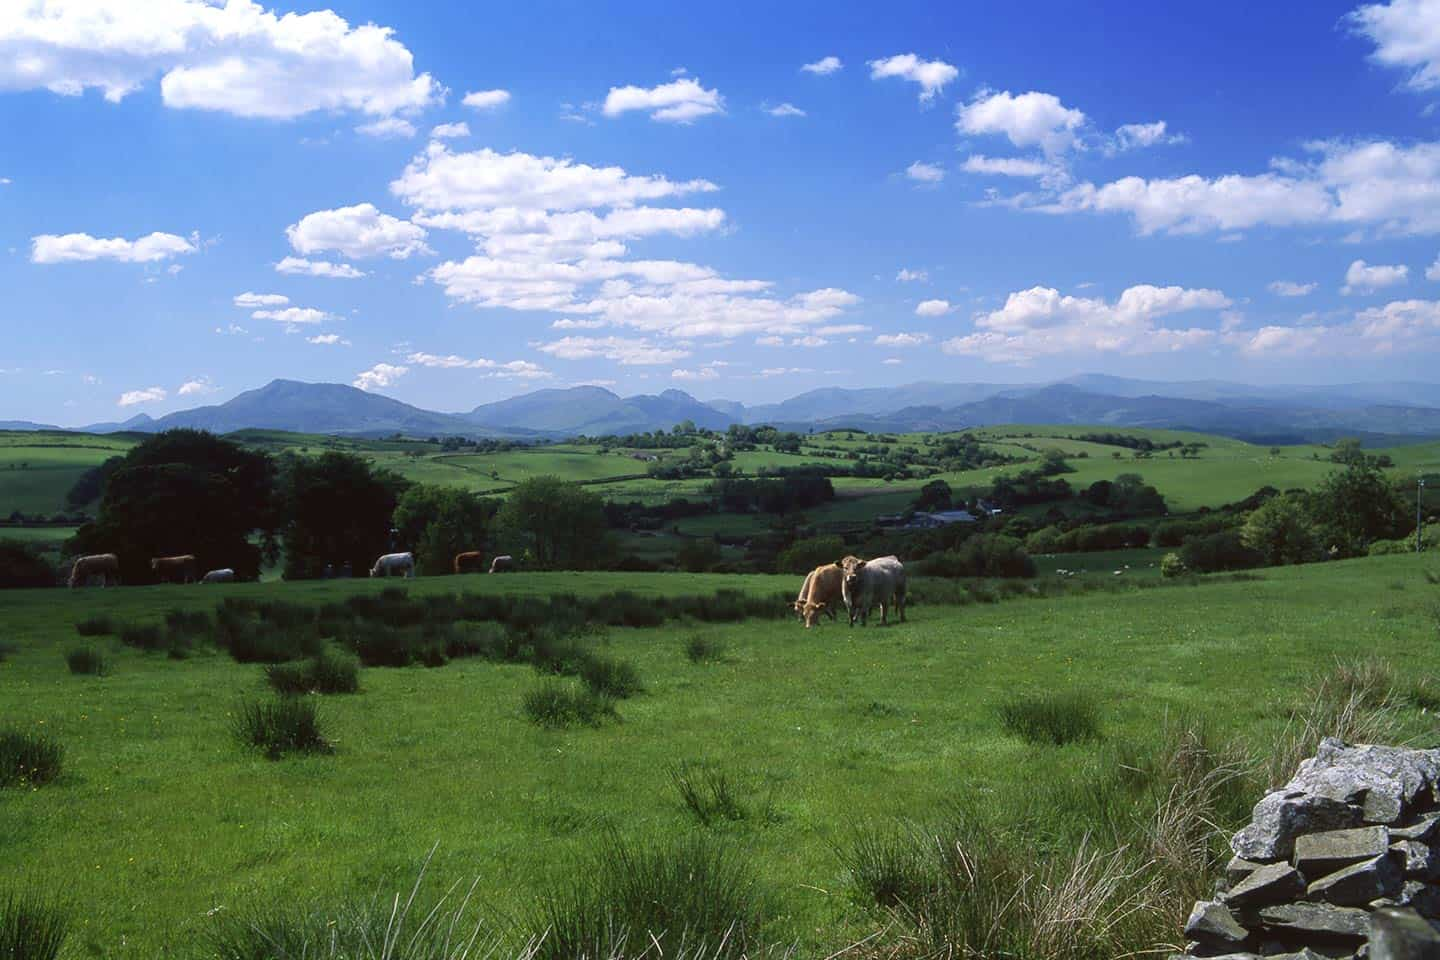 Image of the Snowdonia mountains from the Nebo scenic drive